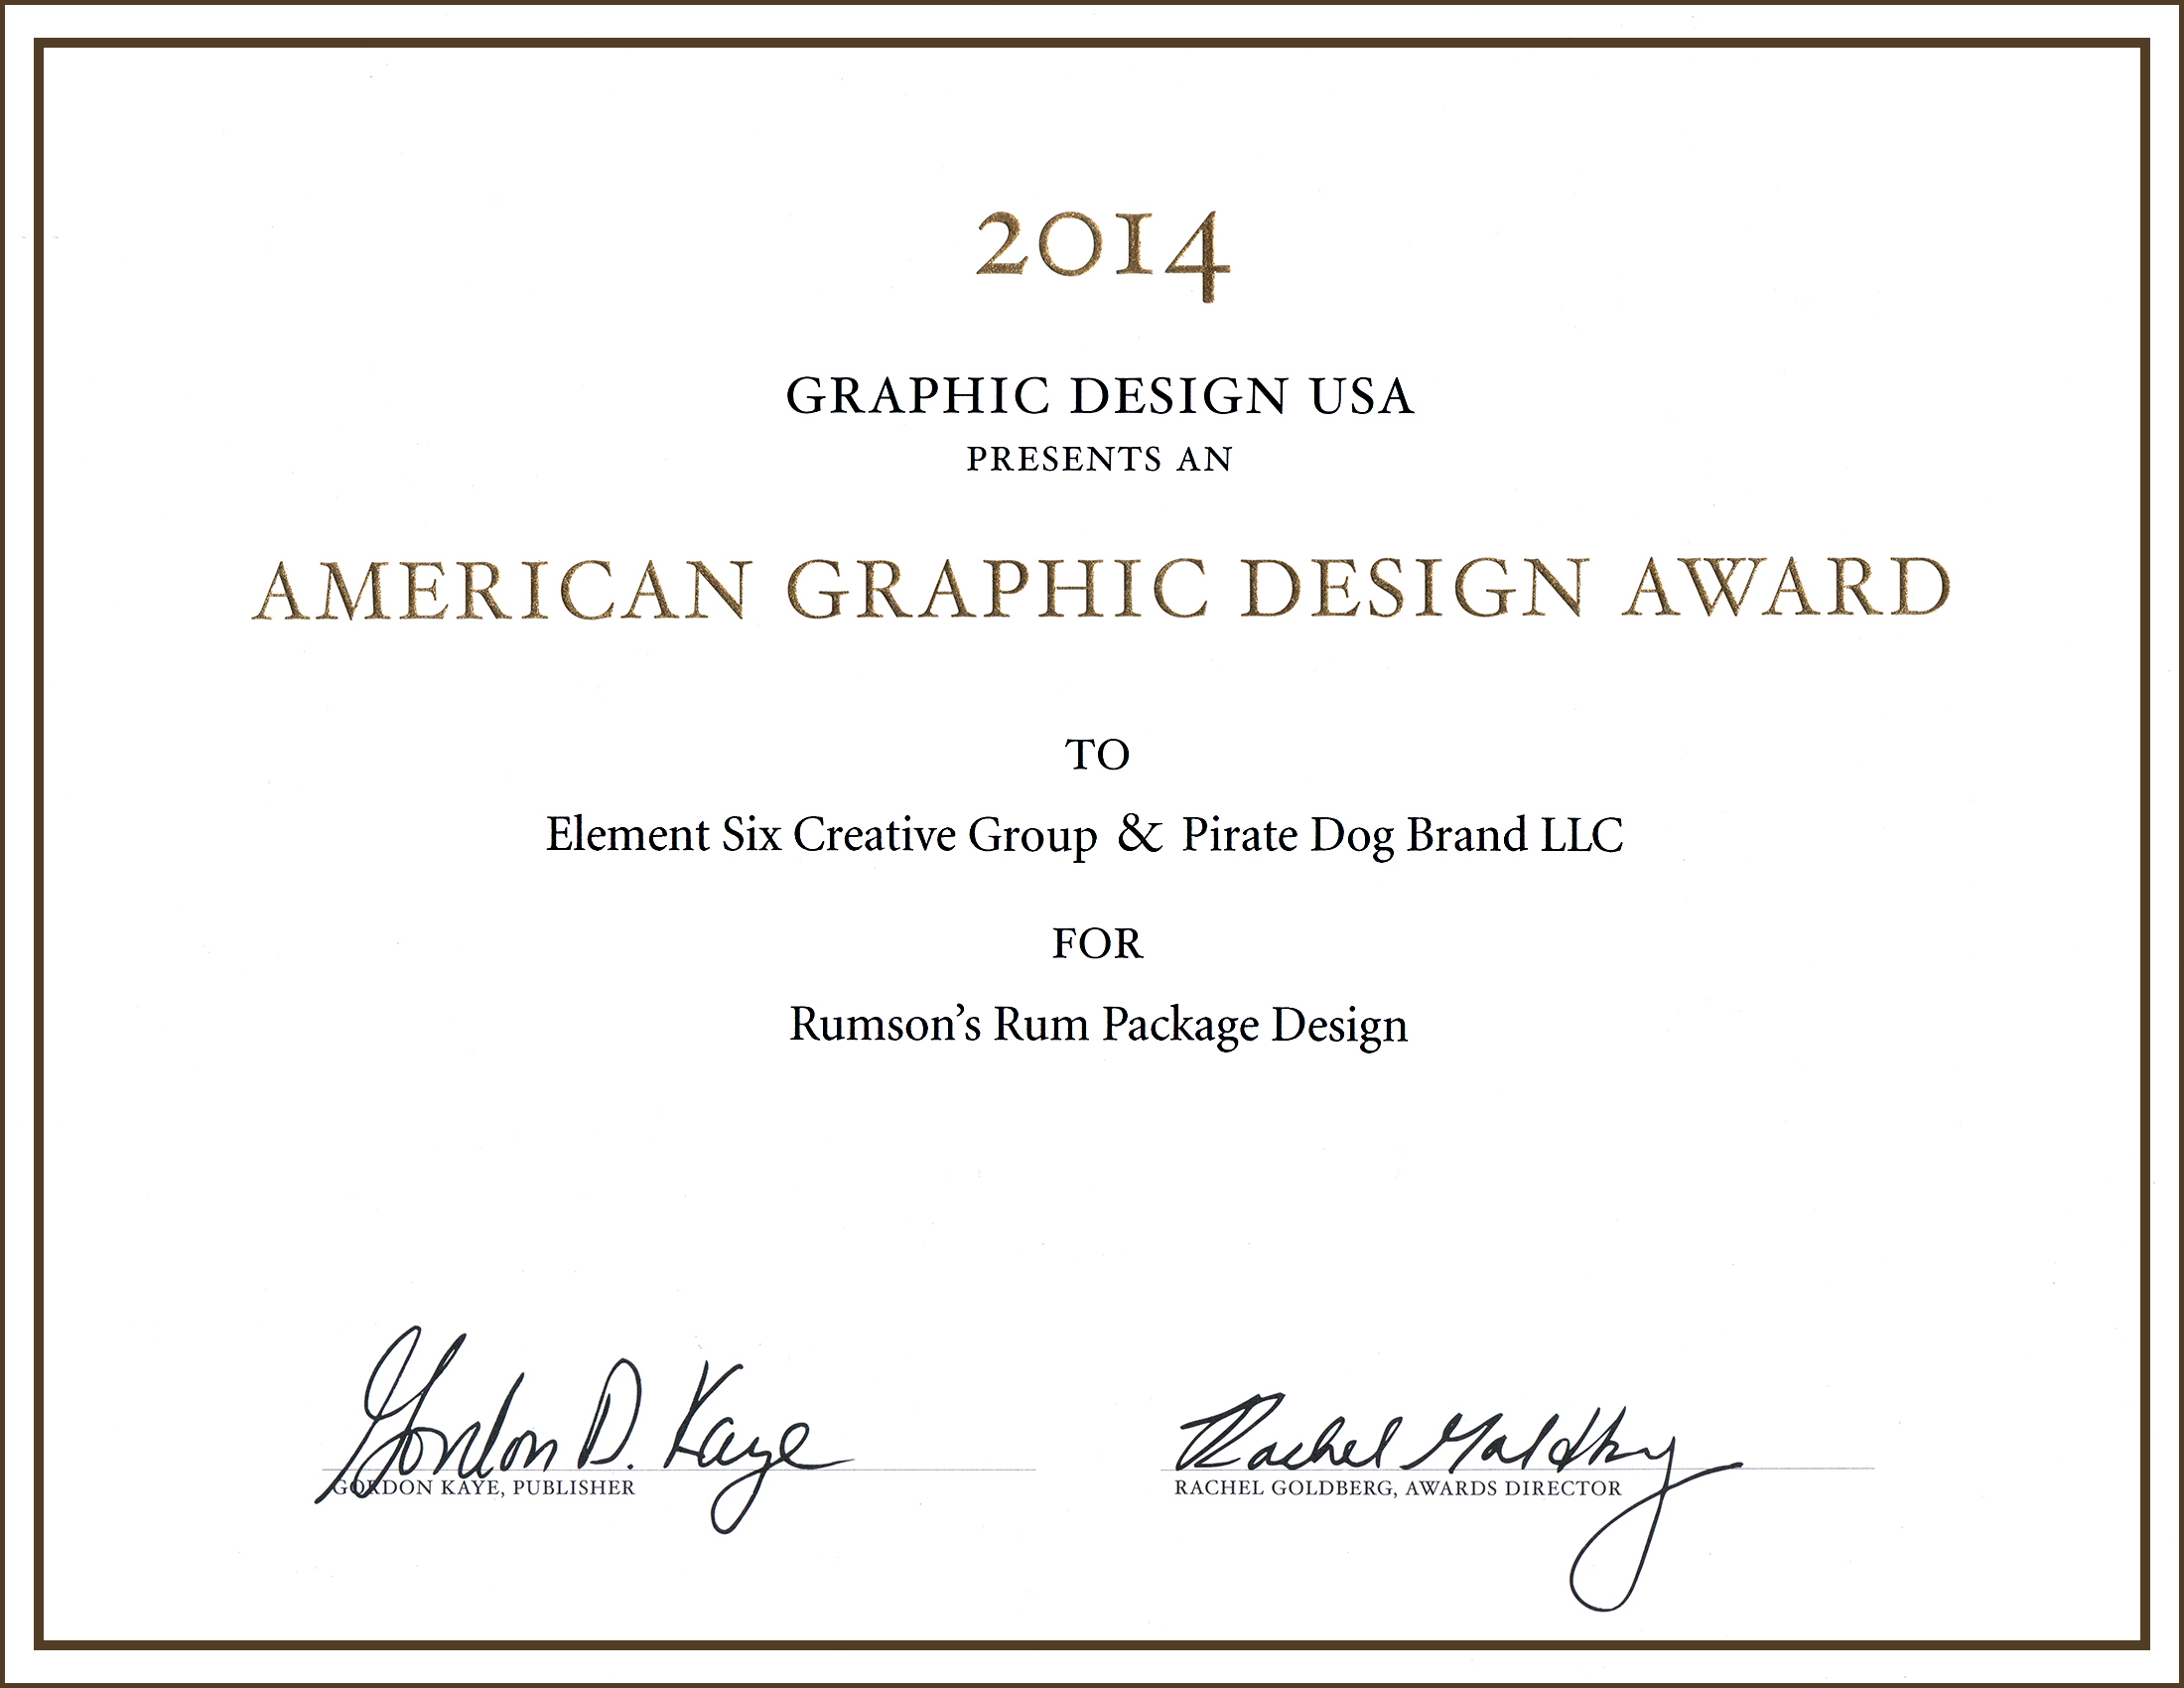 GDUSA_Award_Certificate_2014_border copy